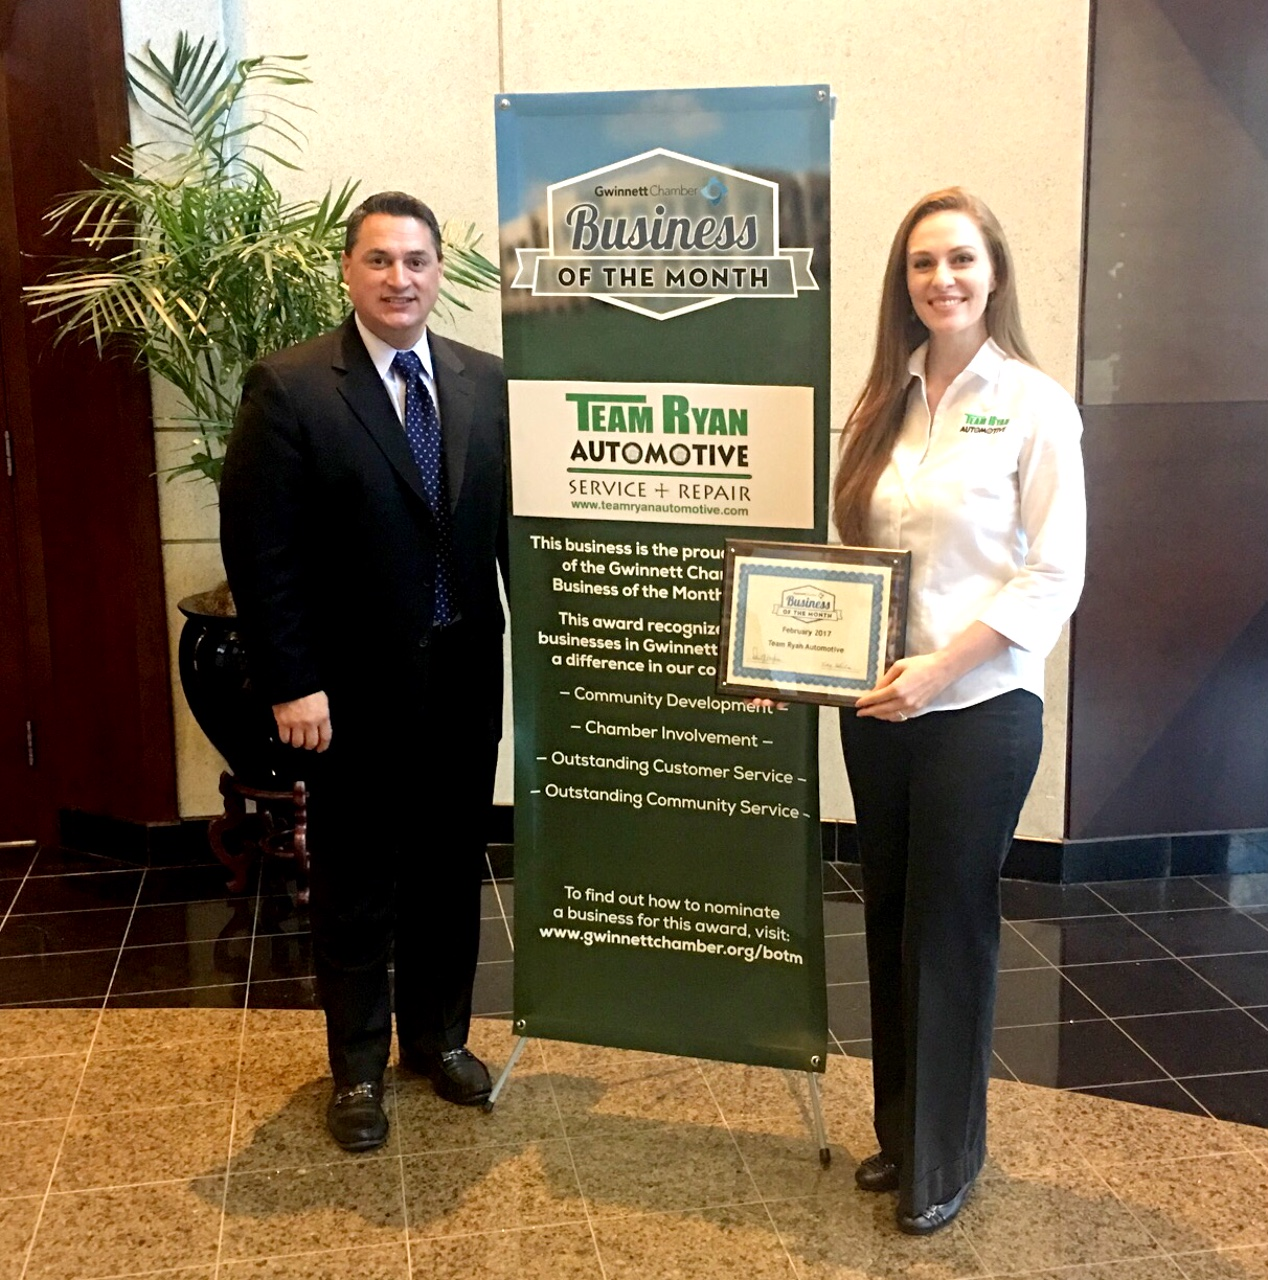 Gwinnett Chamber Business of the Month Feb 2017.jpg